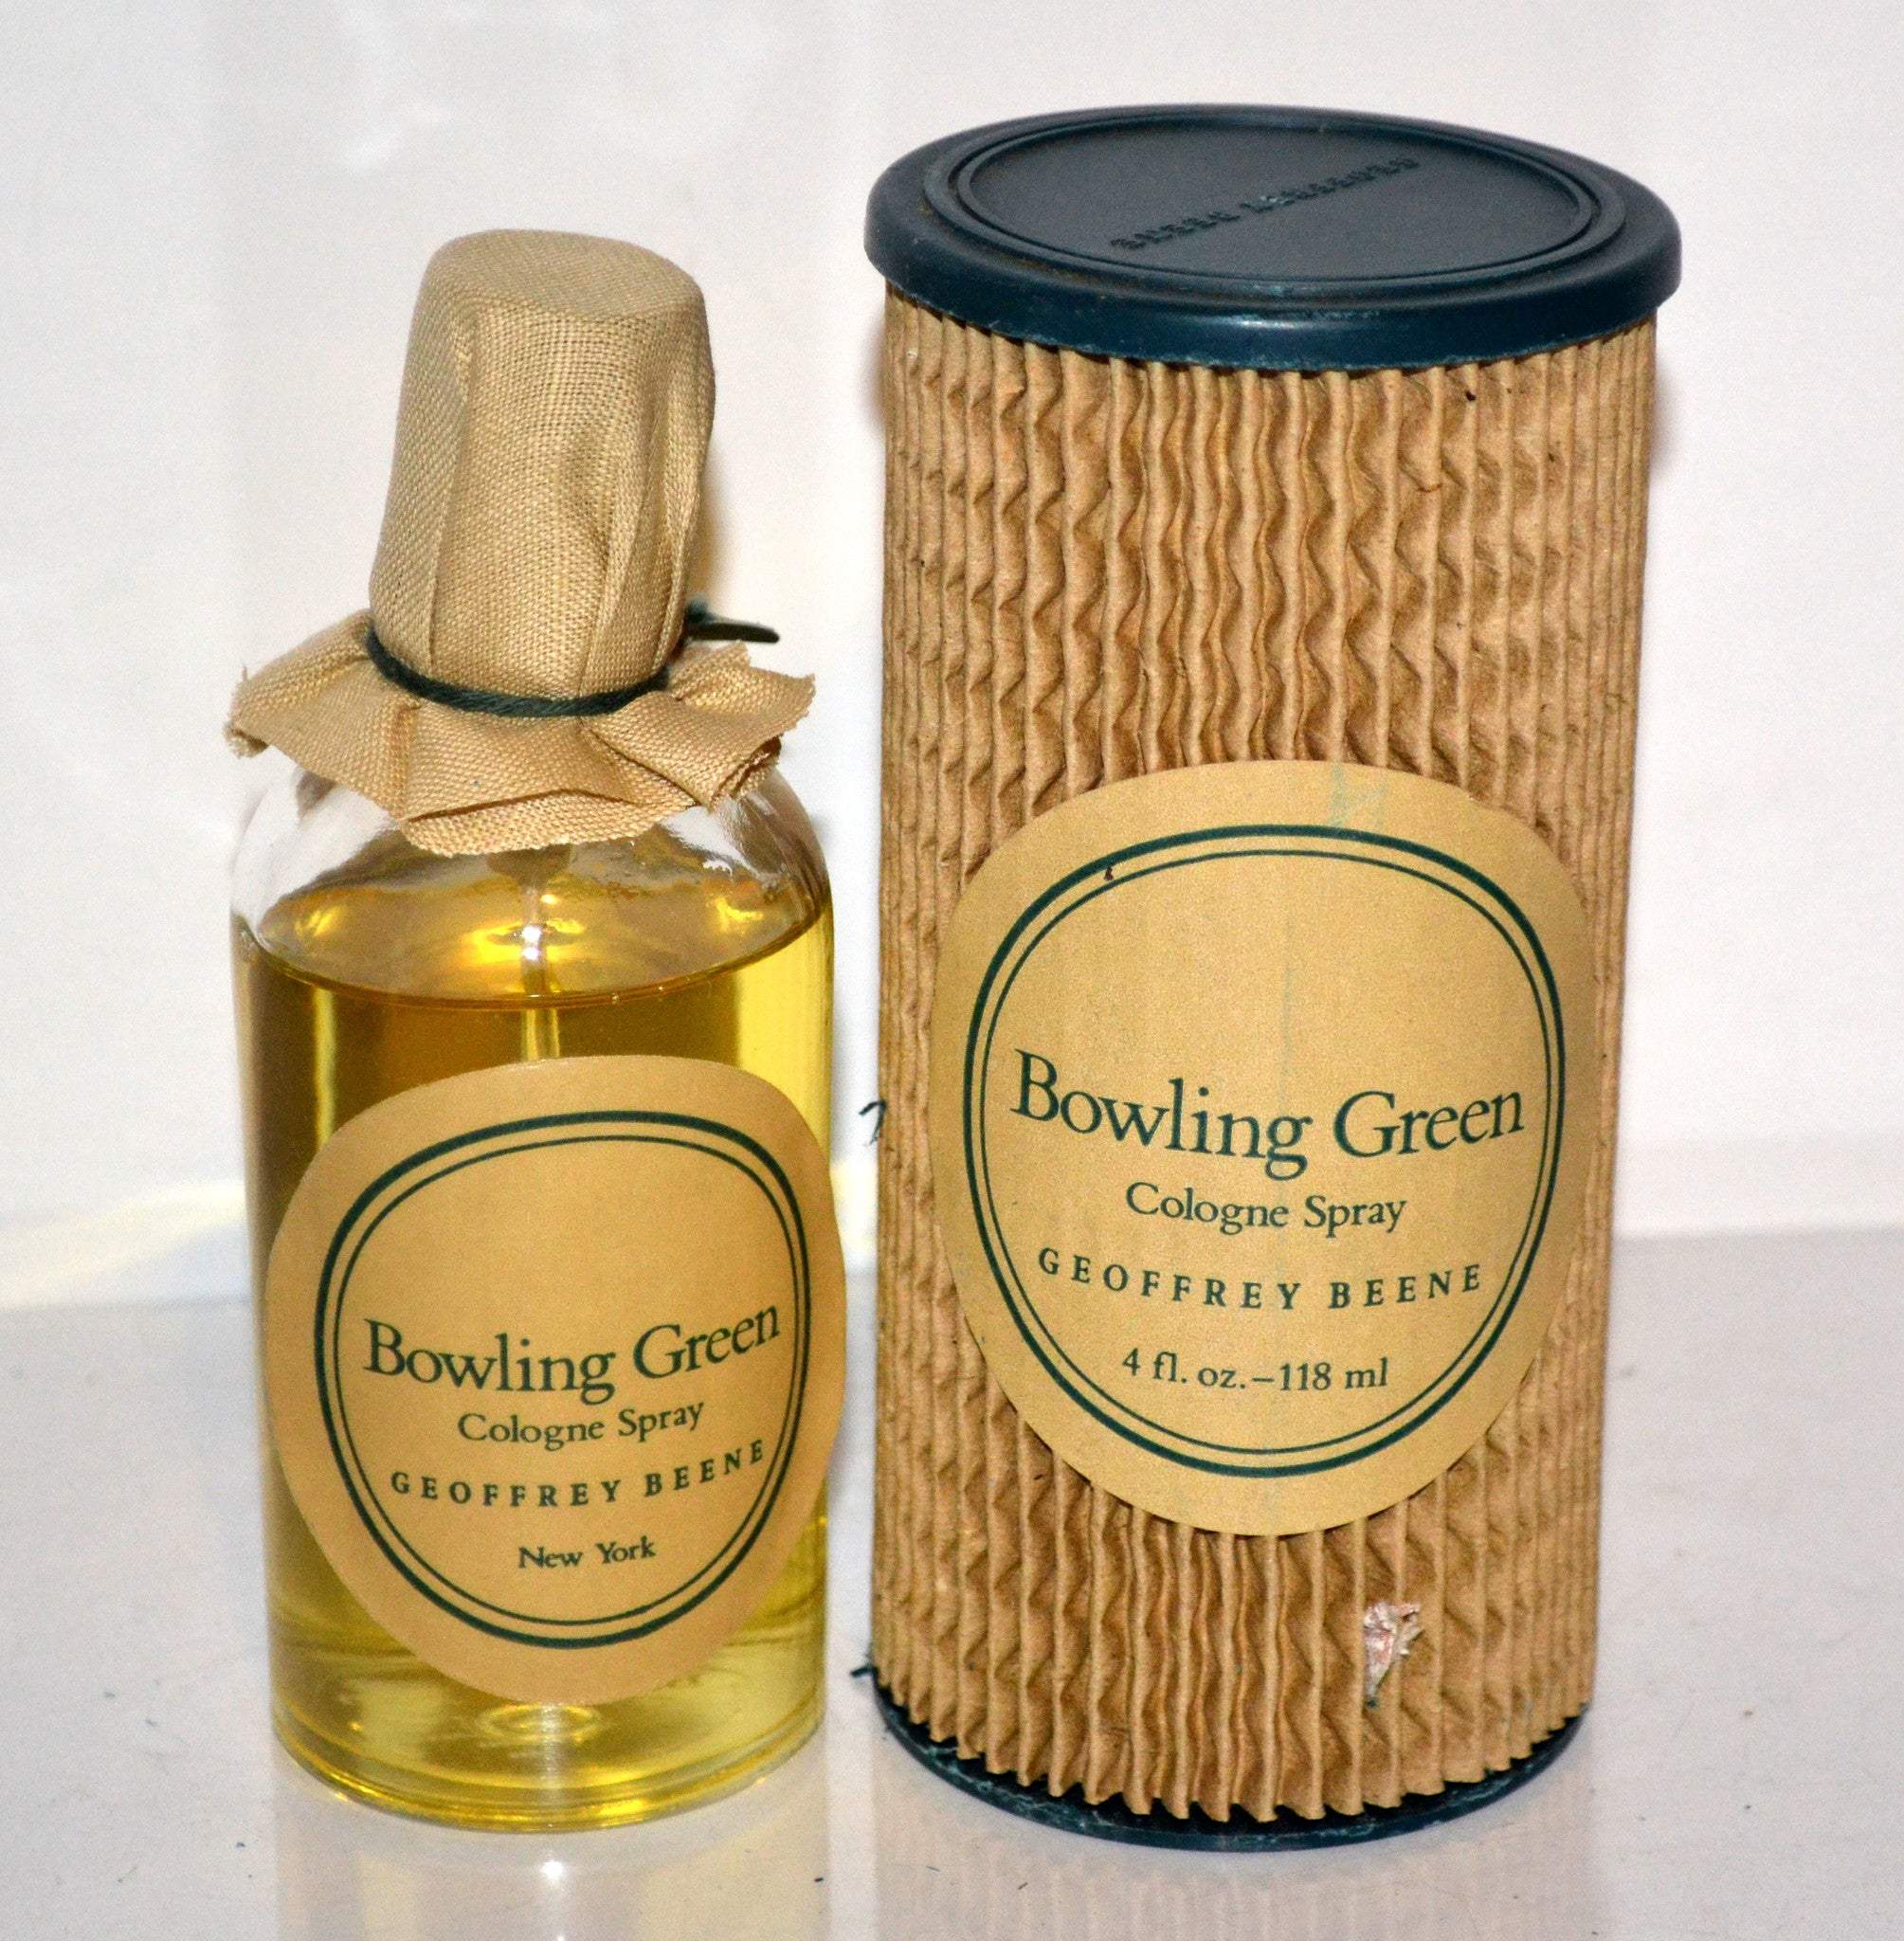 Geoffrey Beene Bowling Green Cologne Spray